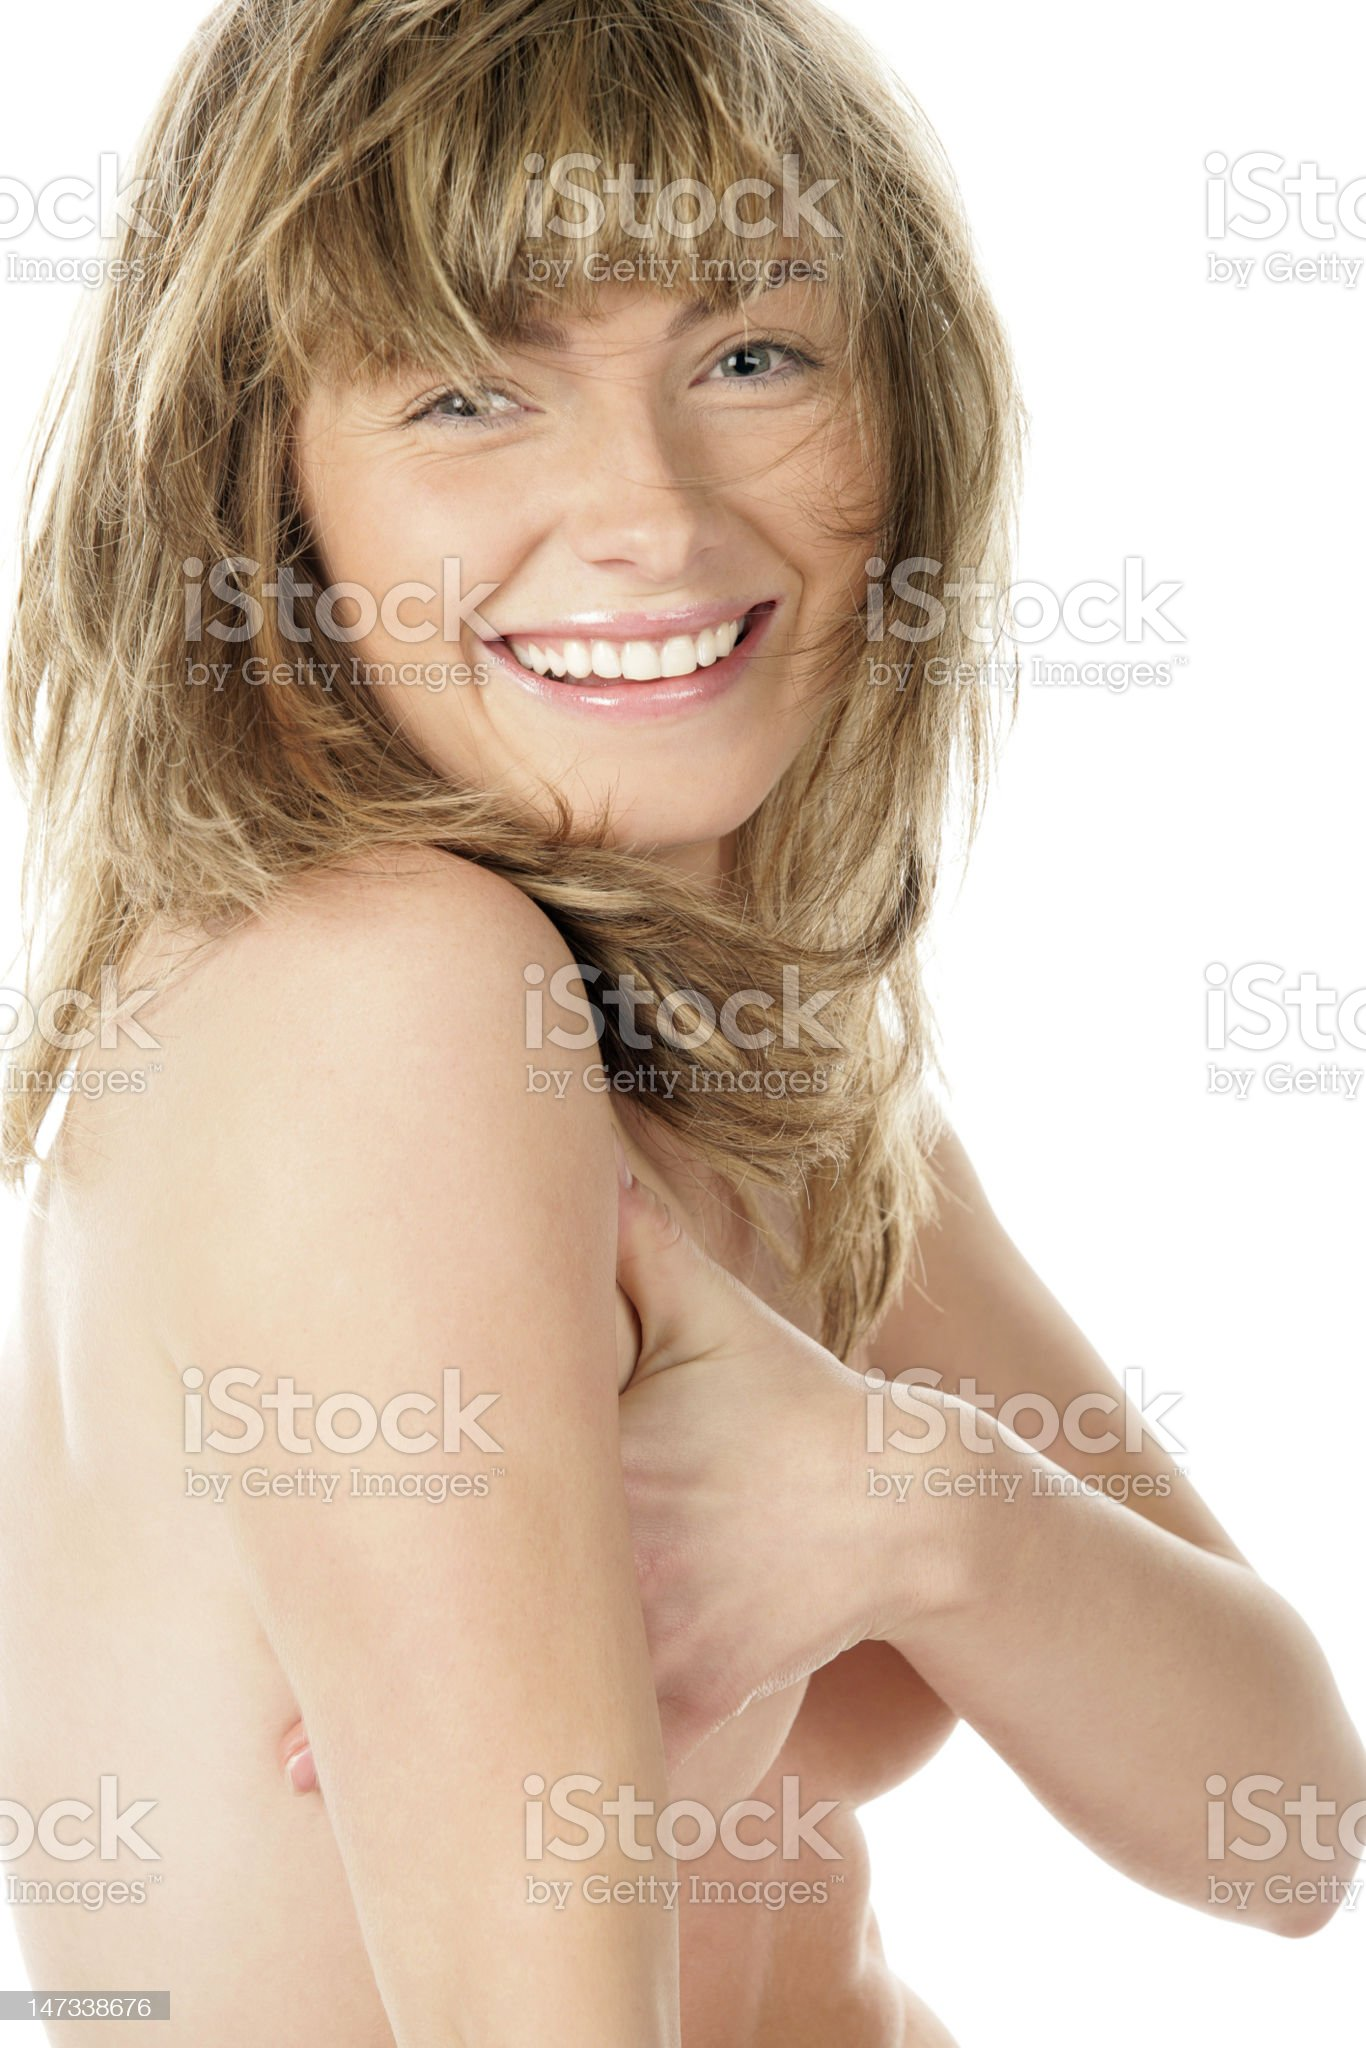 Nude woman covering breasts royalty-free stock photo